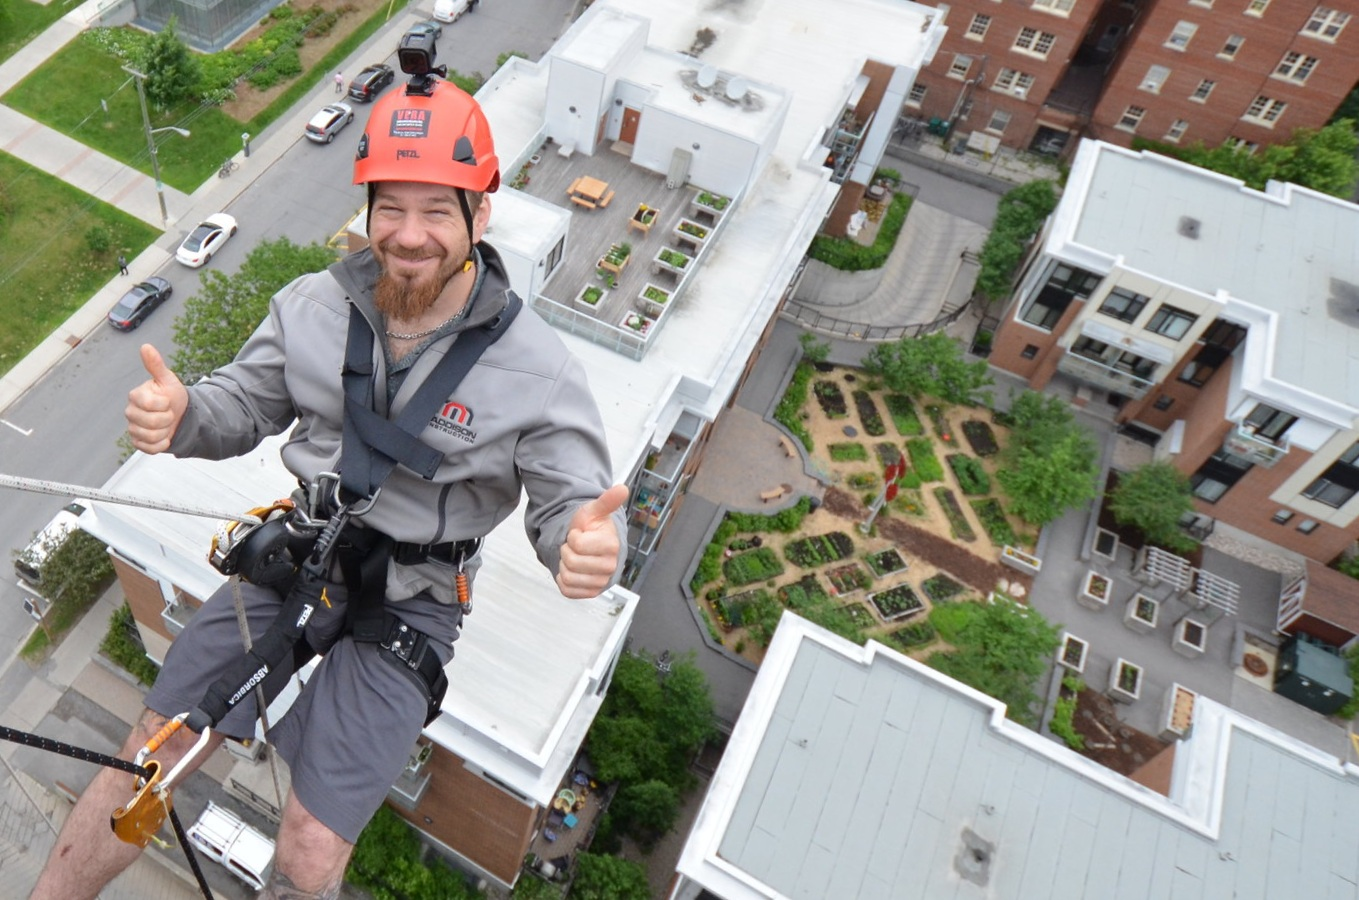 Y Events: YMCA-YWCA Cliffhanger - Take the leap and rappel 16 storeys! Don't miss your chance to see the city like never before while giving kids in our community the chance to experience camp like never before.